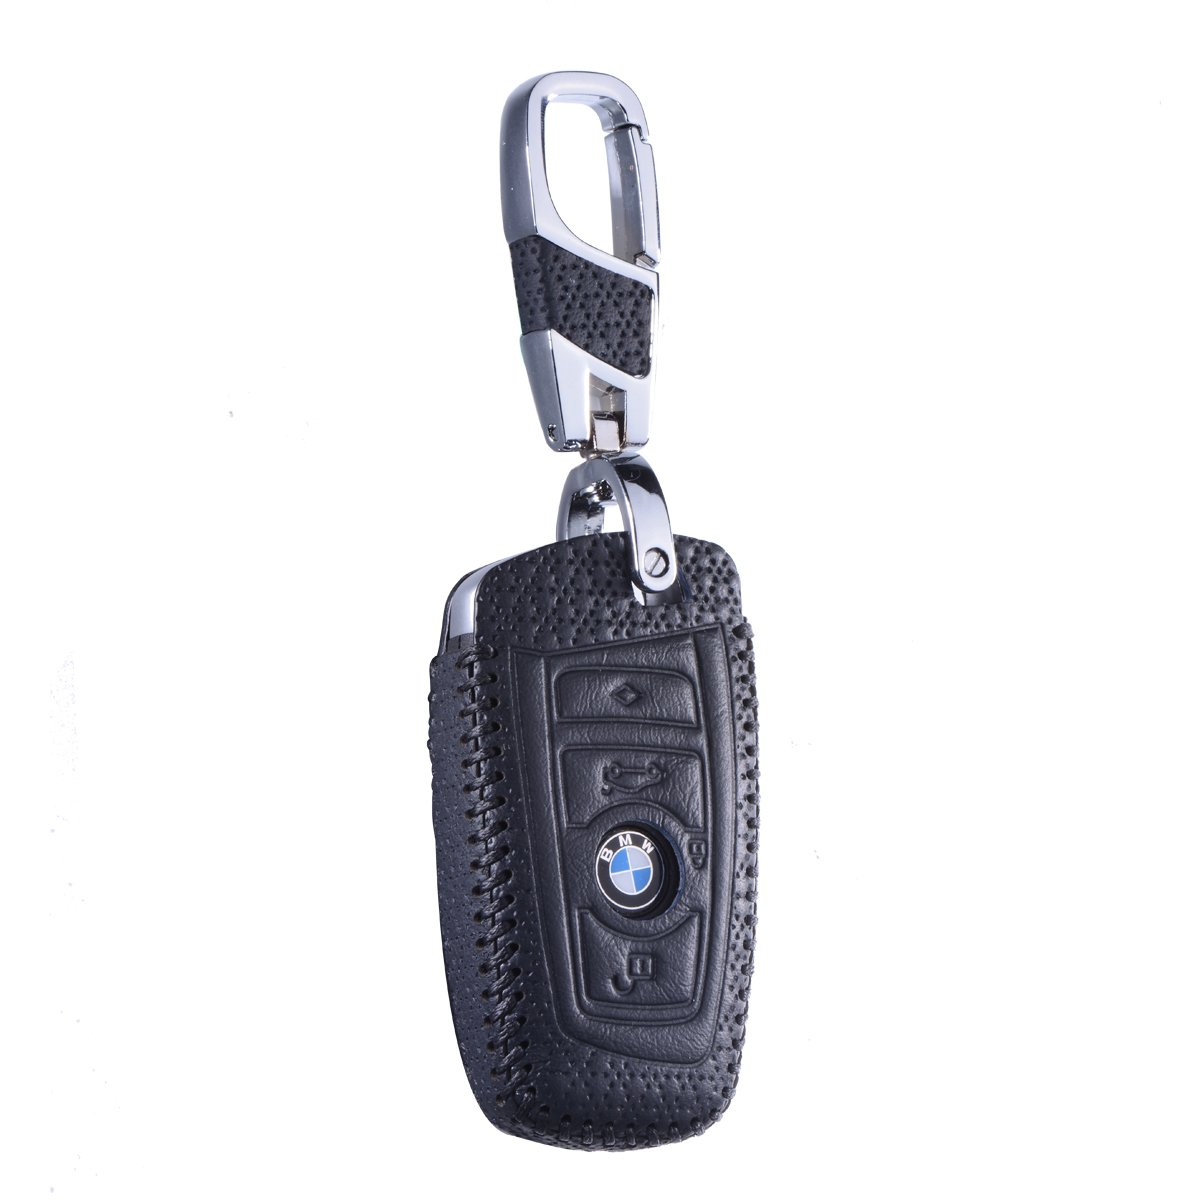 Red DKMUS for BMW 5 7 Series FOB Shell Key Chains Premium Quality Handmade Leather Key Cover for BMW F05 F10 F20 F30 Z4 X1 X2 X3 X4 M1 M3 e30 e36 e90 e60 e84 e39 e46 e90 e63 e53